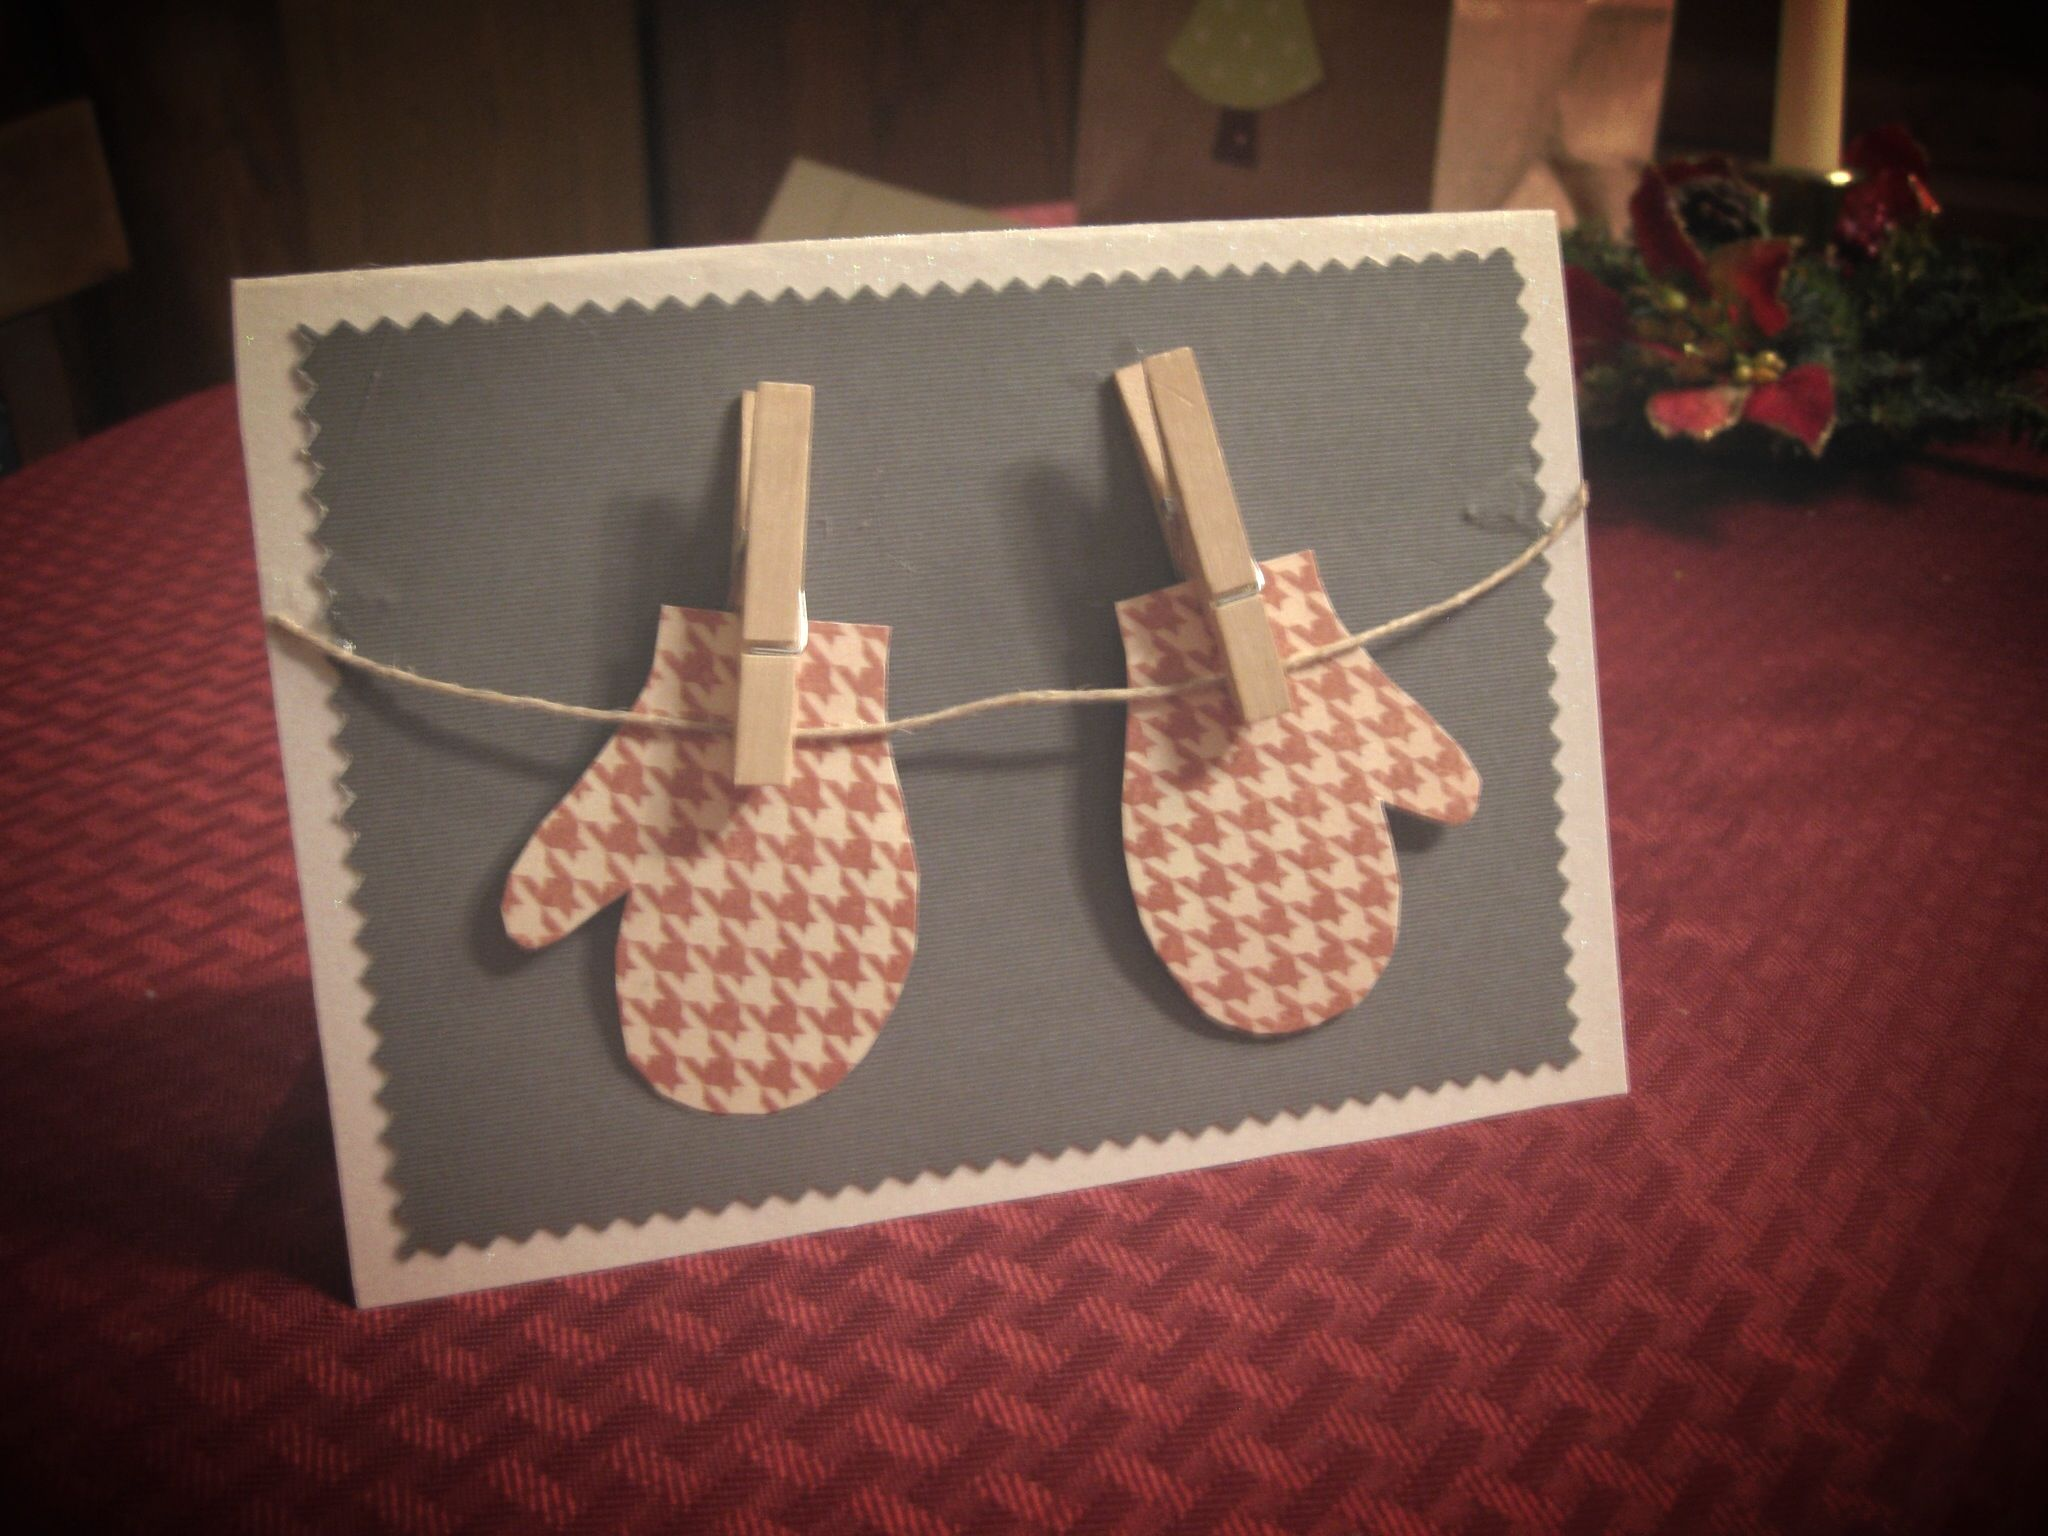 Christmas card with mittens hanging from mini clothespins